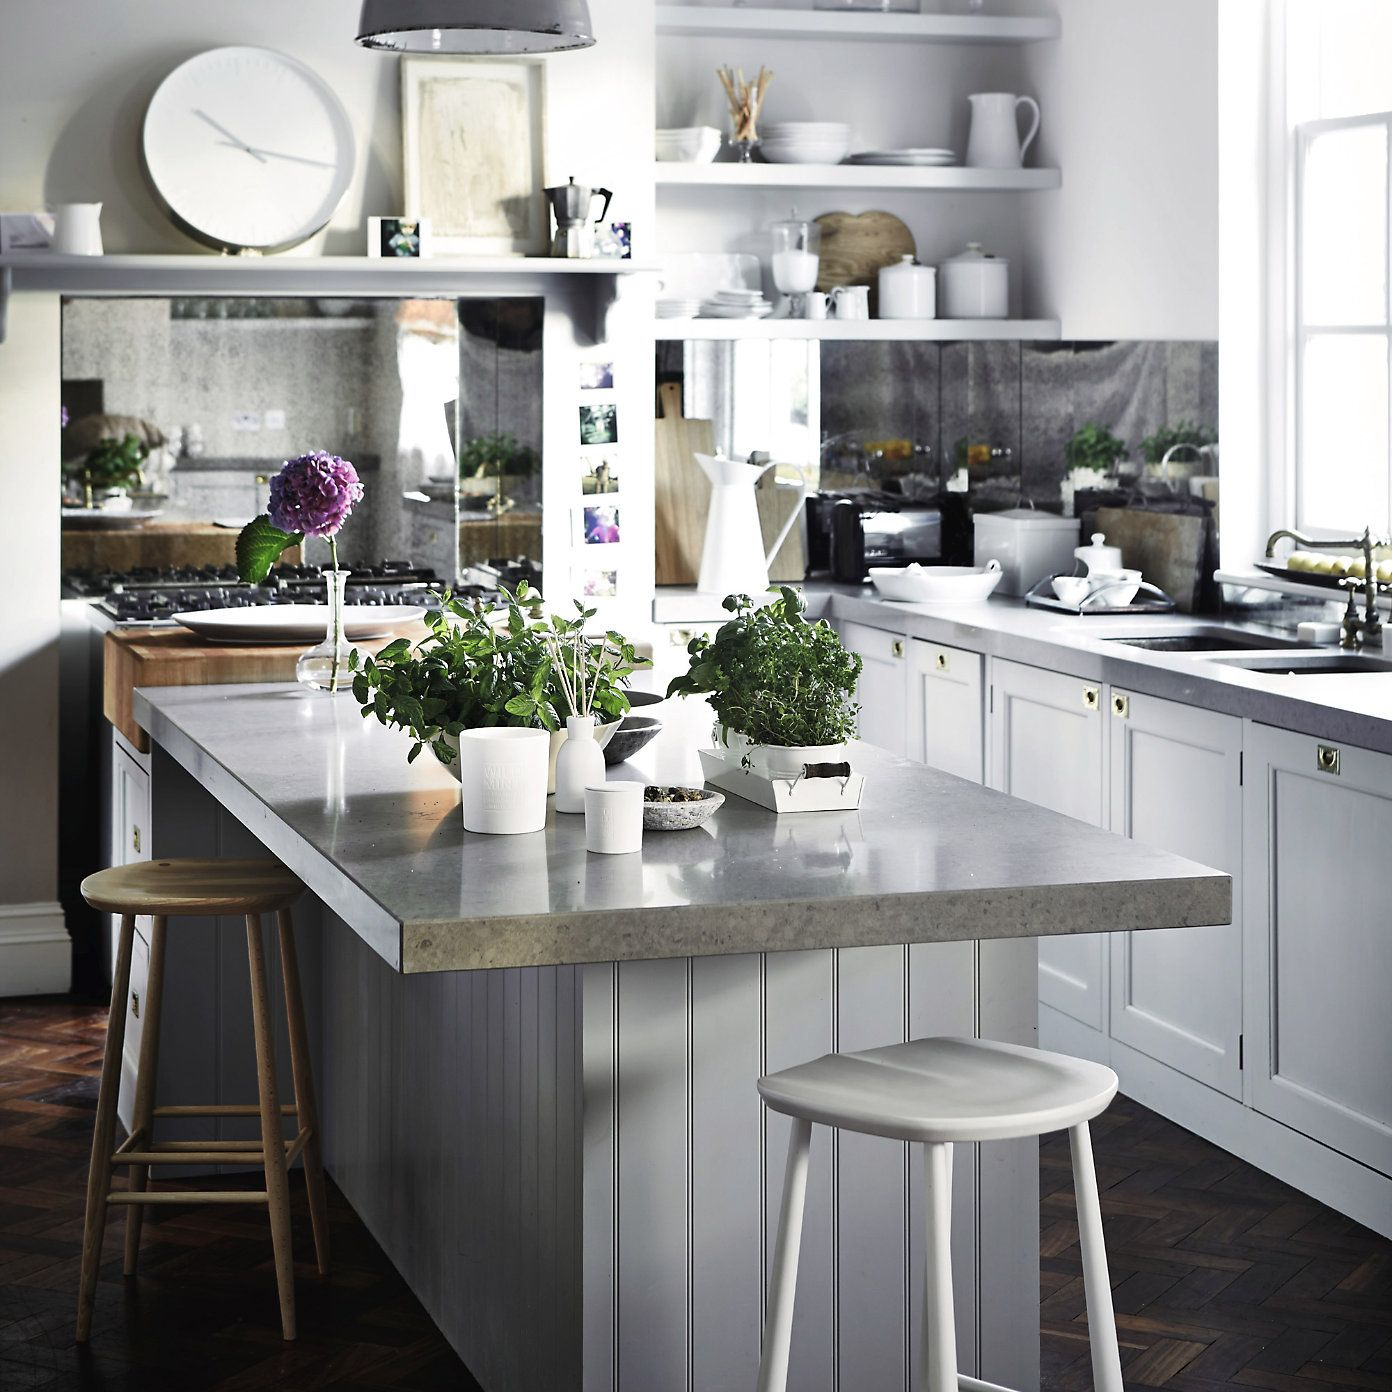 Pin By Riette Sykes On Furniture Home Kitchens Classy Kitchen Kitchen Interior